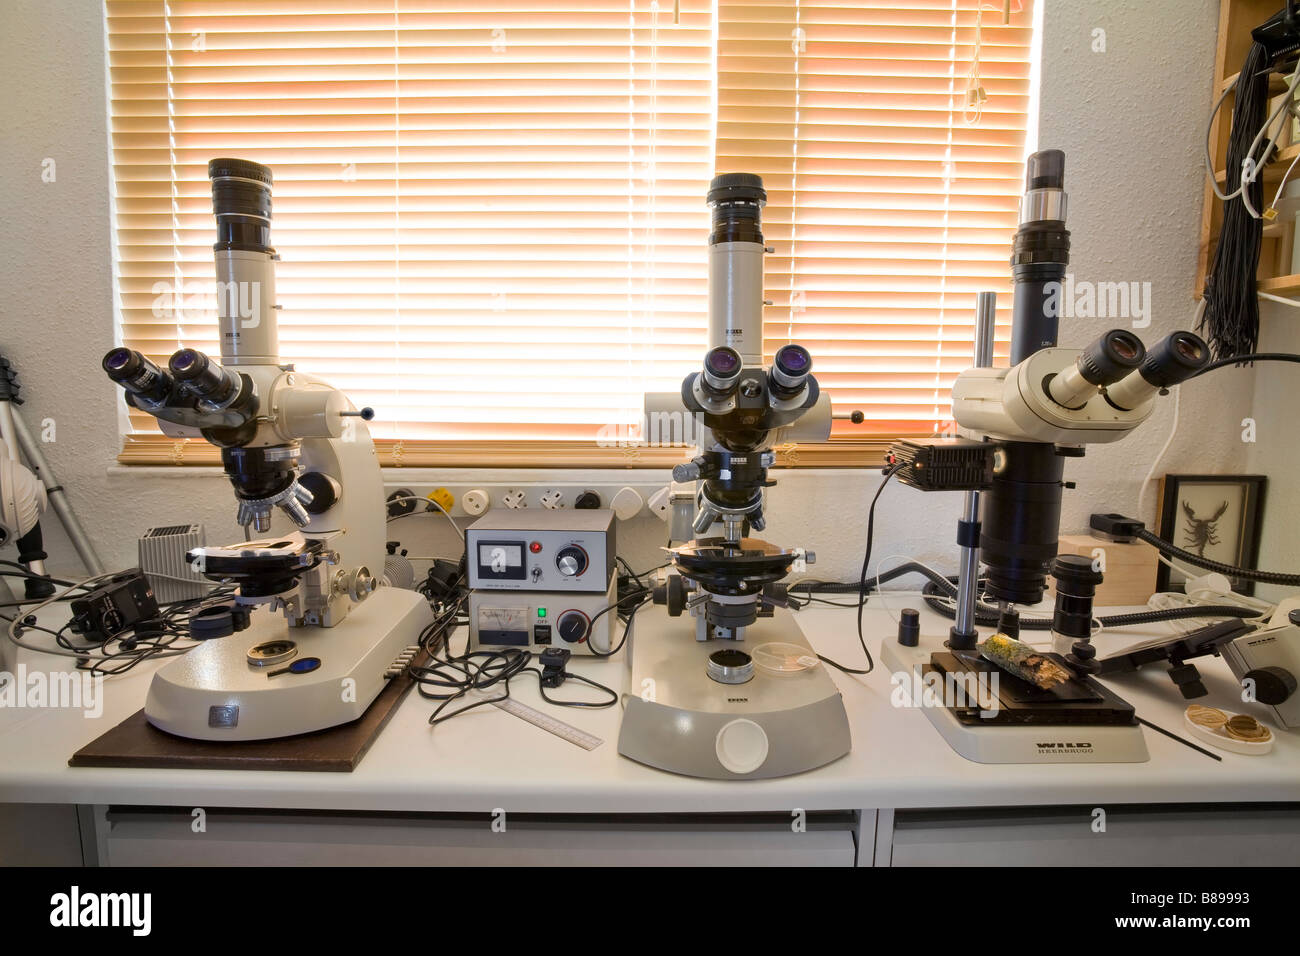 microscope science lab Zeiss Wild Leica scopes - Stock Image